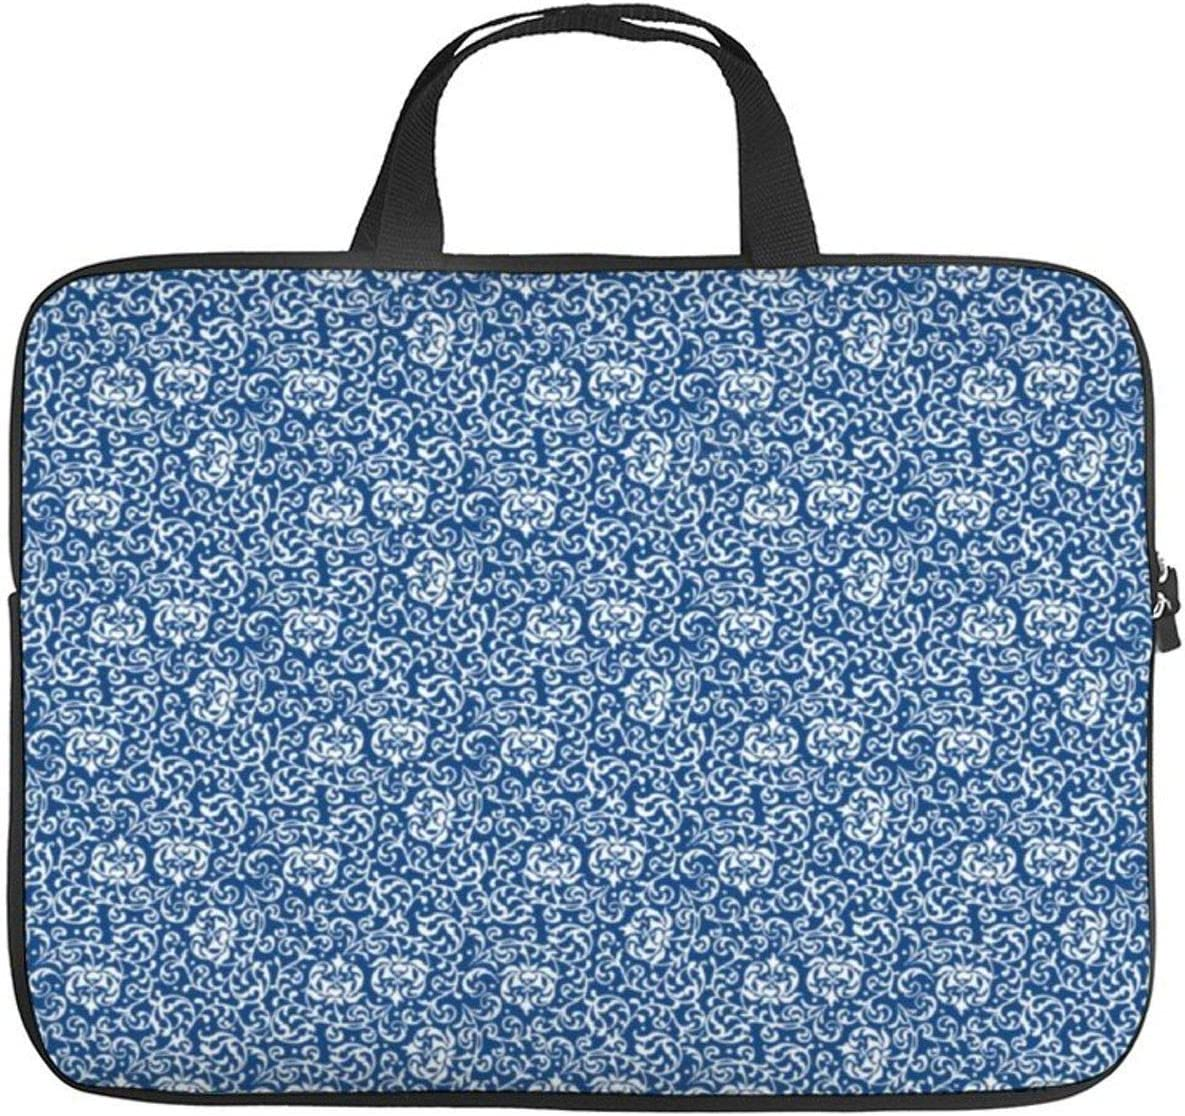 15 Inch Laptop Bag with Handle Blue and White Tudor Gardens Floral Laptop Briefcase for Office School Men & Women Teens